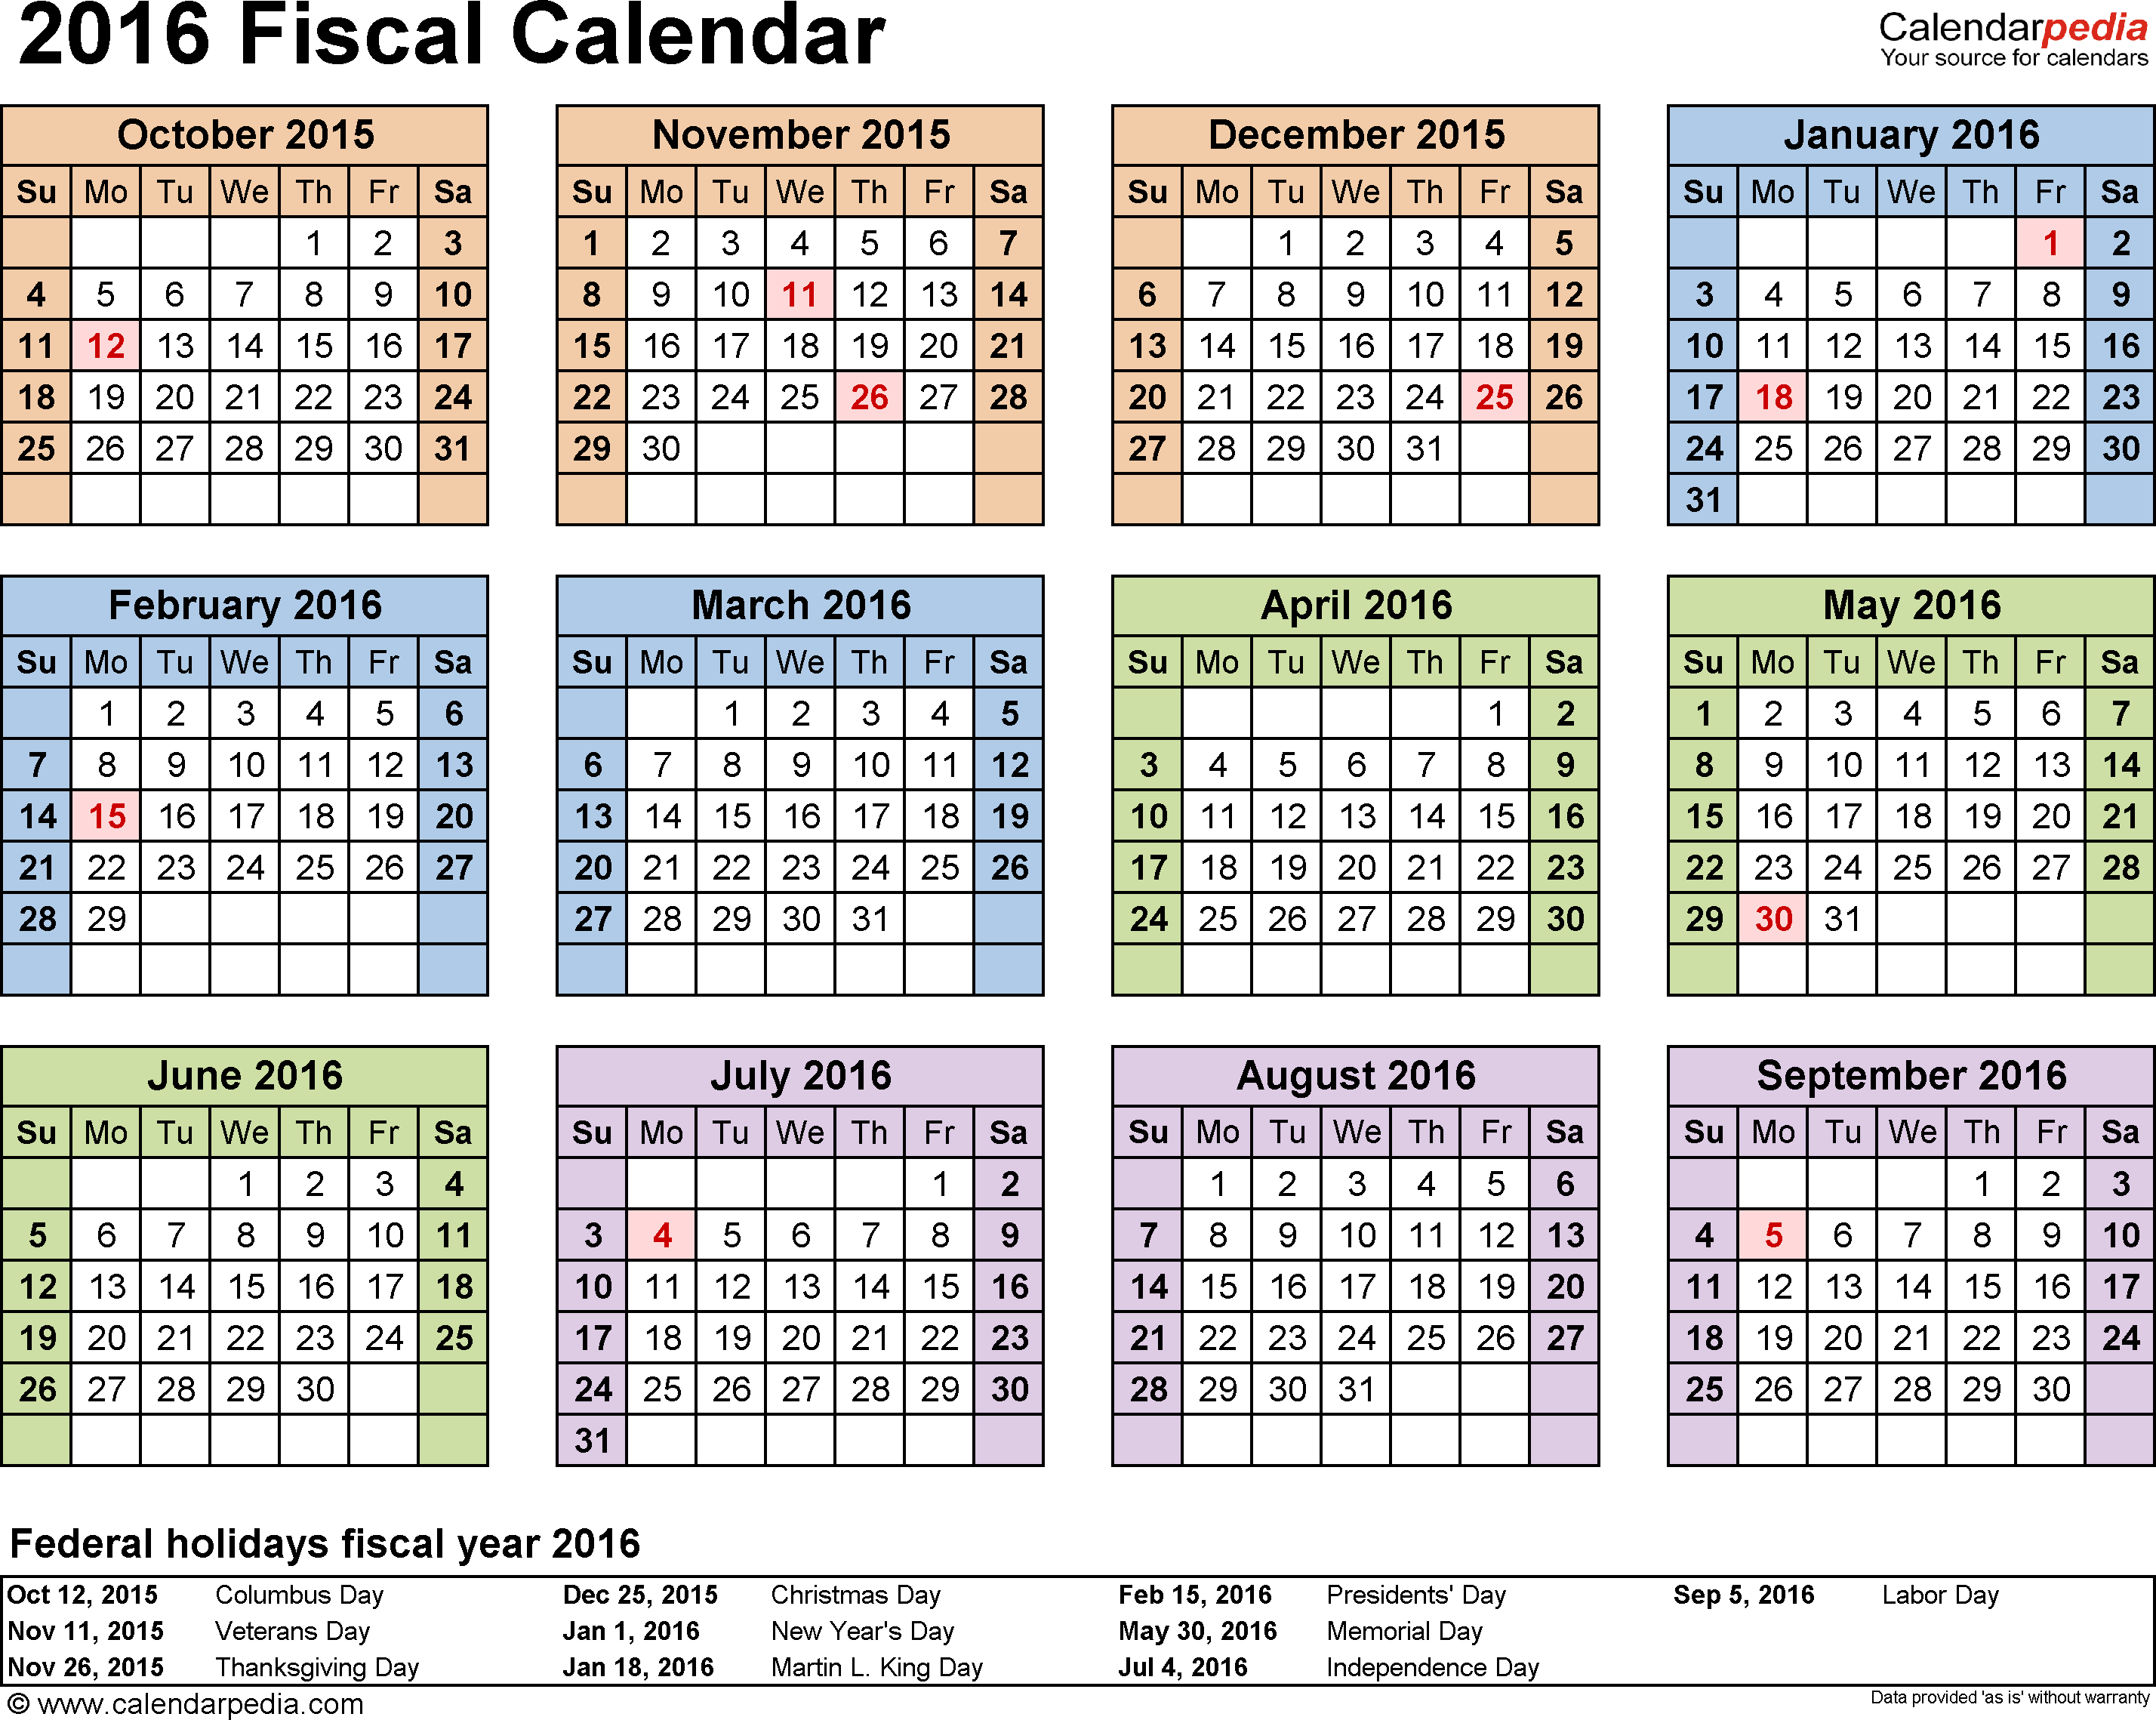 template 4 fiscal year calendar 2016 for pdf landscape orientation year at a